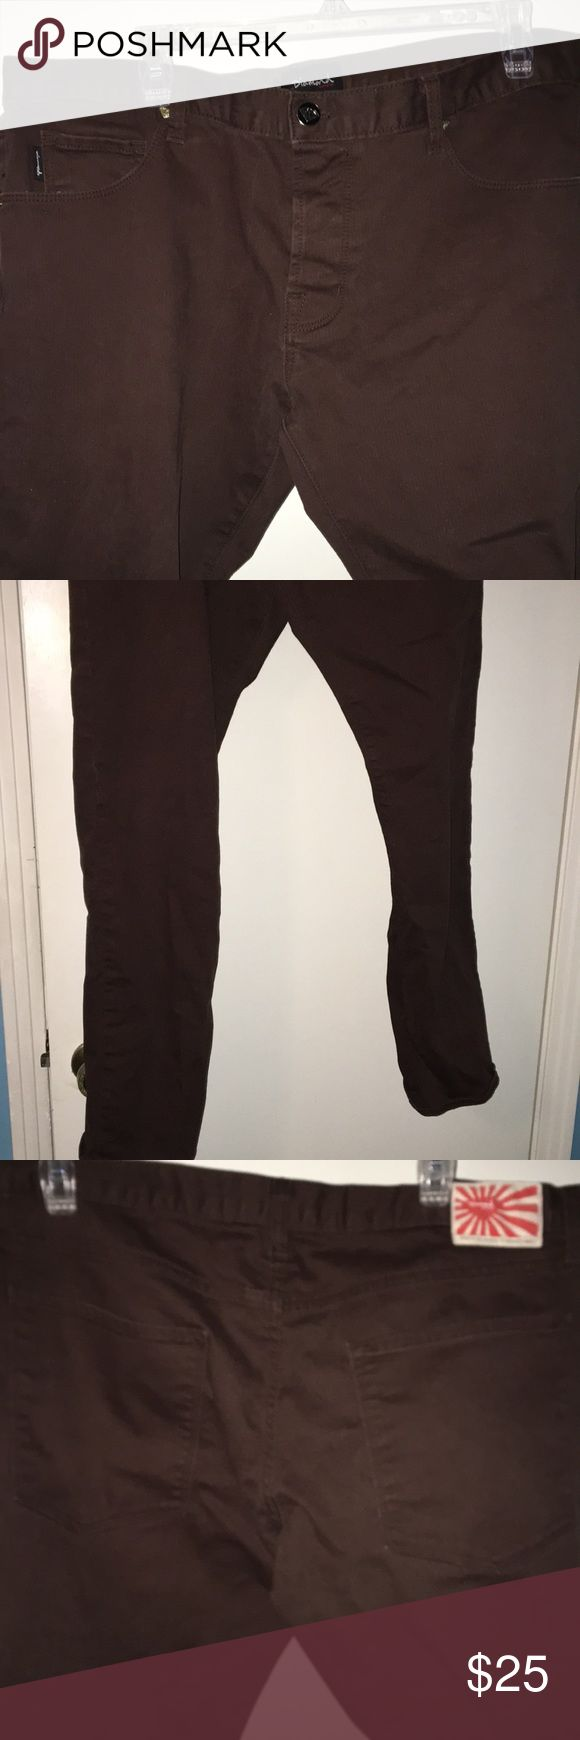 Diamond Supply Company Jeans Men's brown Diamond Supply Co Jeans size 38 inch waist. There is a spot on one of the legs see pictures. The length is 39 inches. The midrise is 9 1/2 inches and the inseam is 30 inches. Diamond Supply Co. Jeans Straight